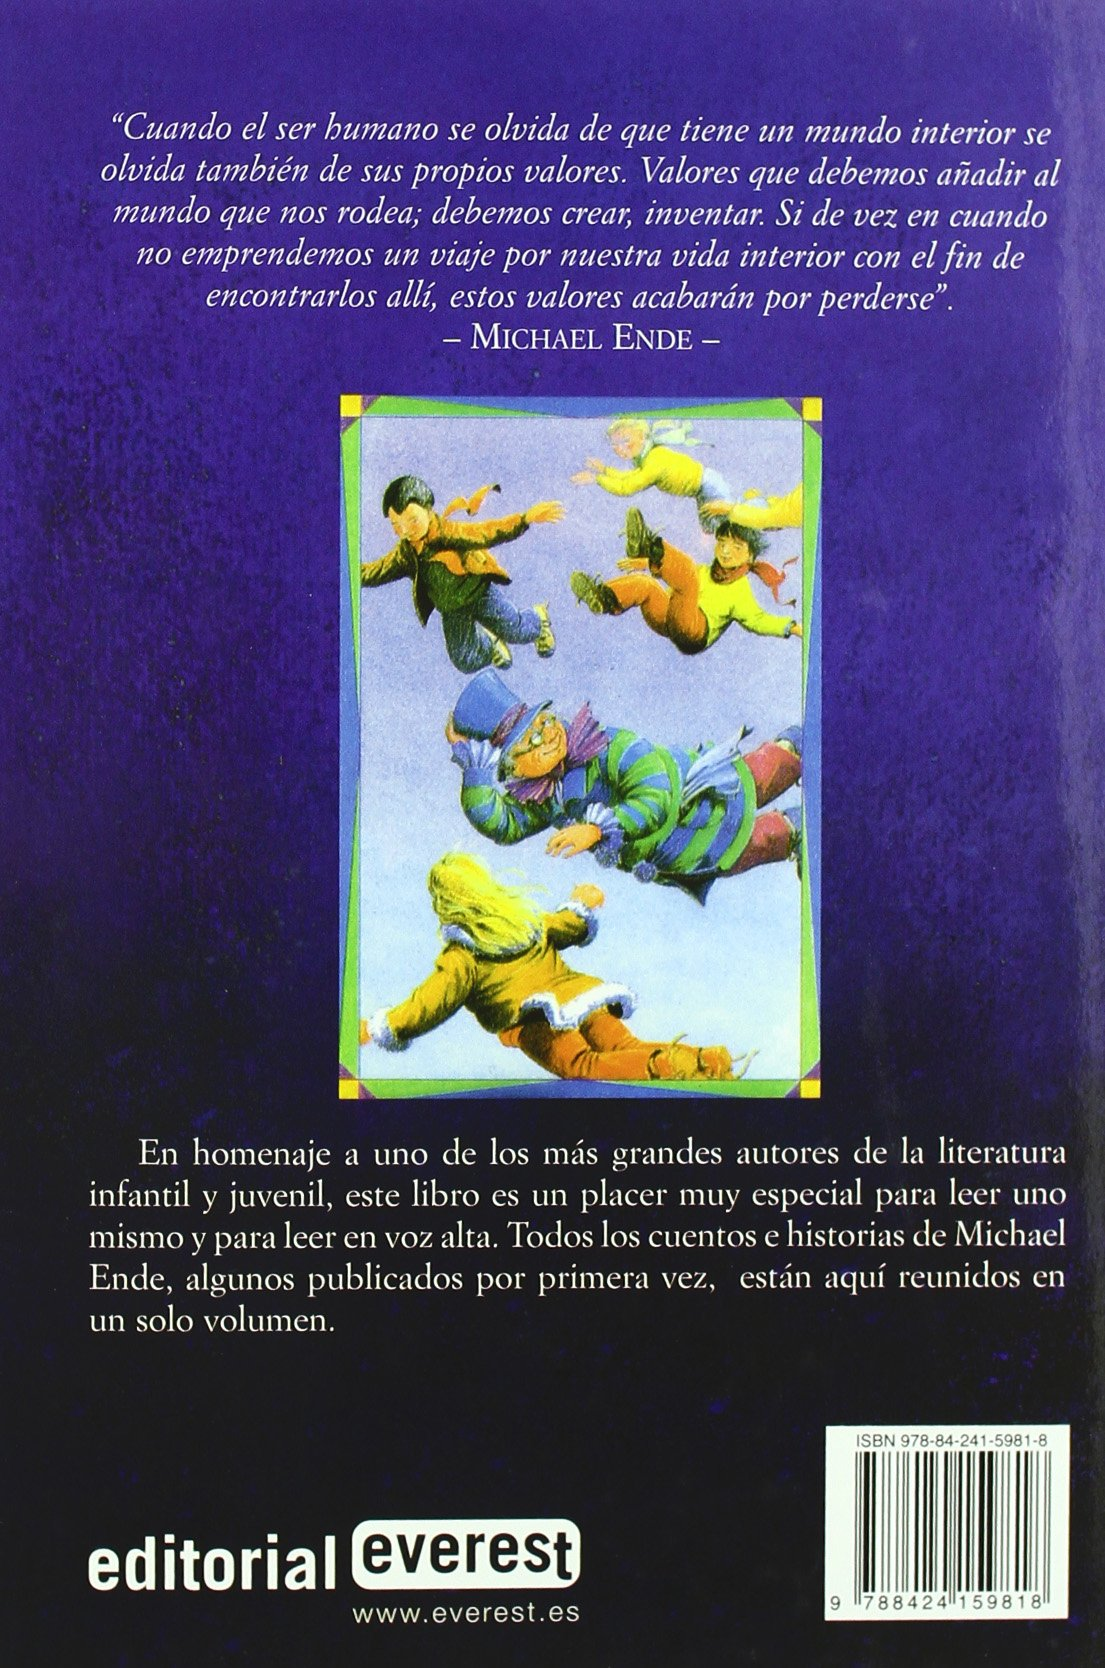 Los Mejores Cuentos De Michael Ende/Michael Endes Best Stories (Spanish Edition): Michael Ende, Bernhard Oberdieck: 9788424159818: Amazon.com: Books